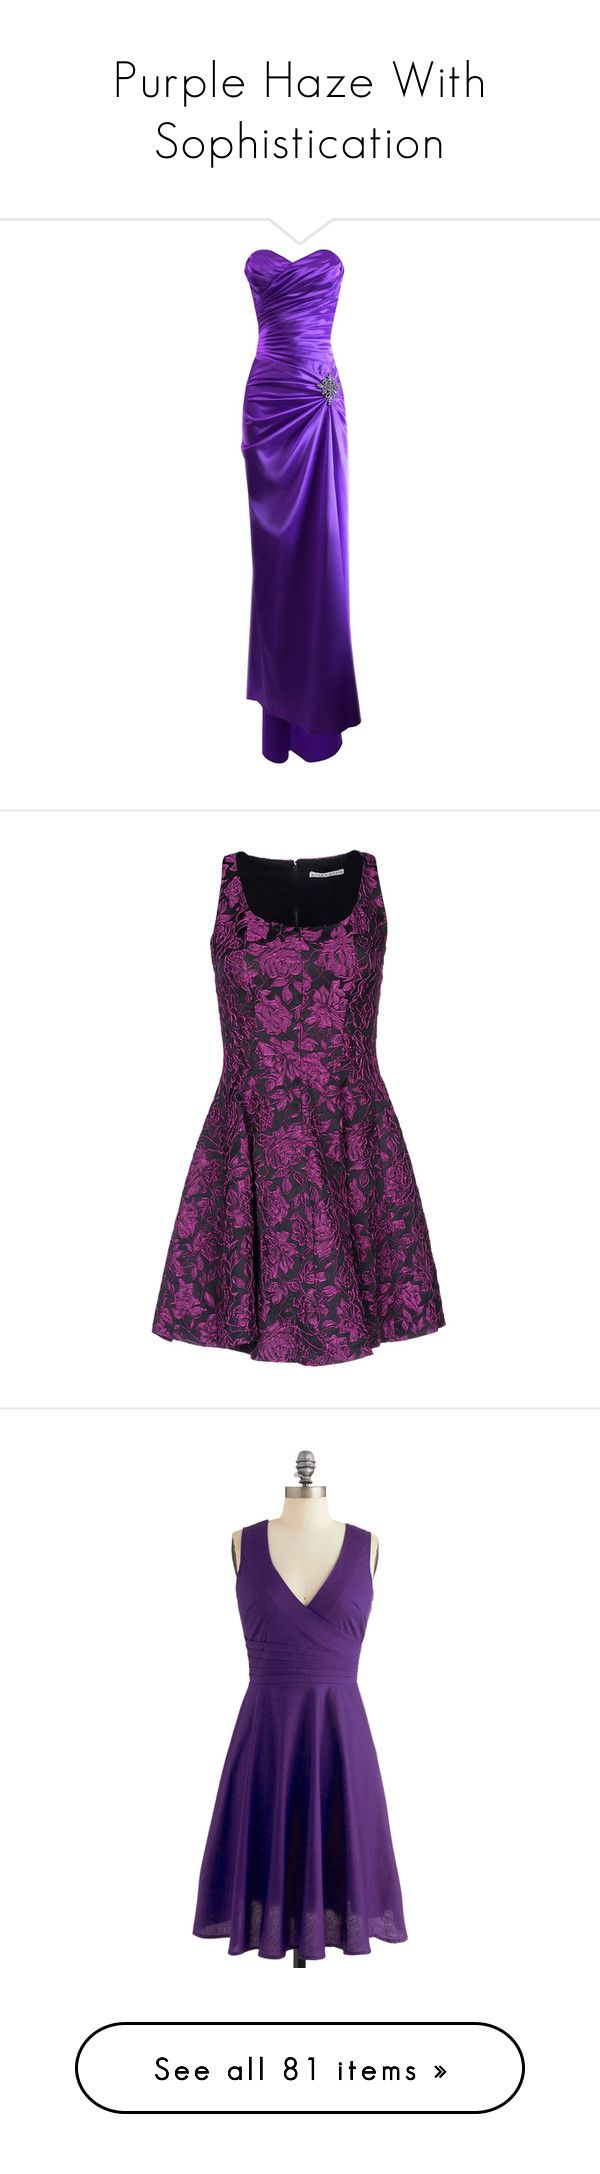 """Purple Haze With Sophistication"" by english-thea ❤ liked on Polyvore featuring dresses, gowns, long dresses, 13. dresses., purple, petite formal dresses, long bridesmaid dresses, long formal dresses, long formal gowns and long gowns"